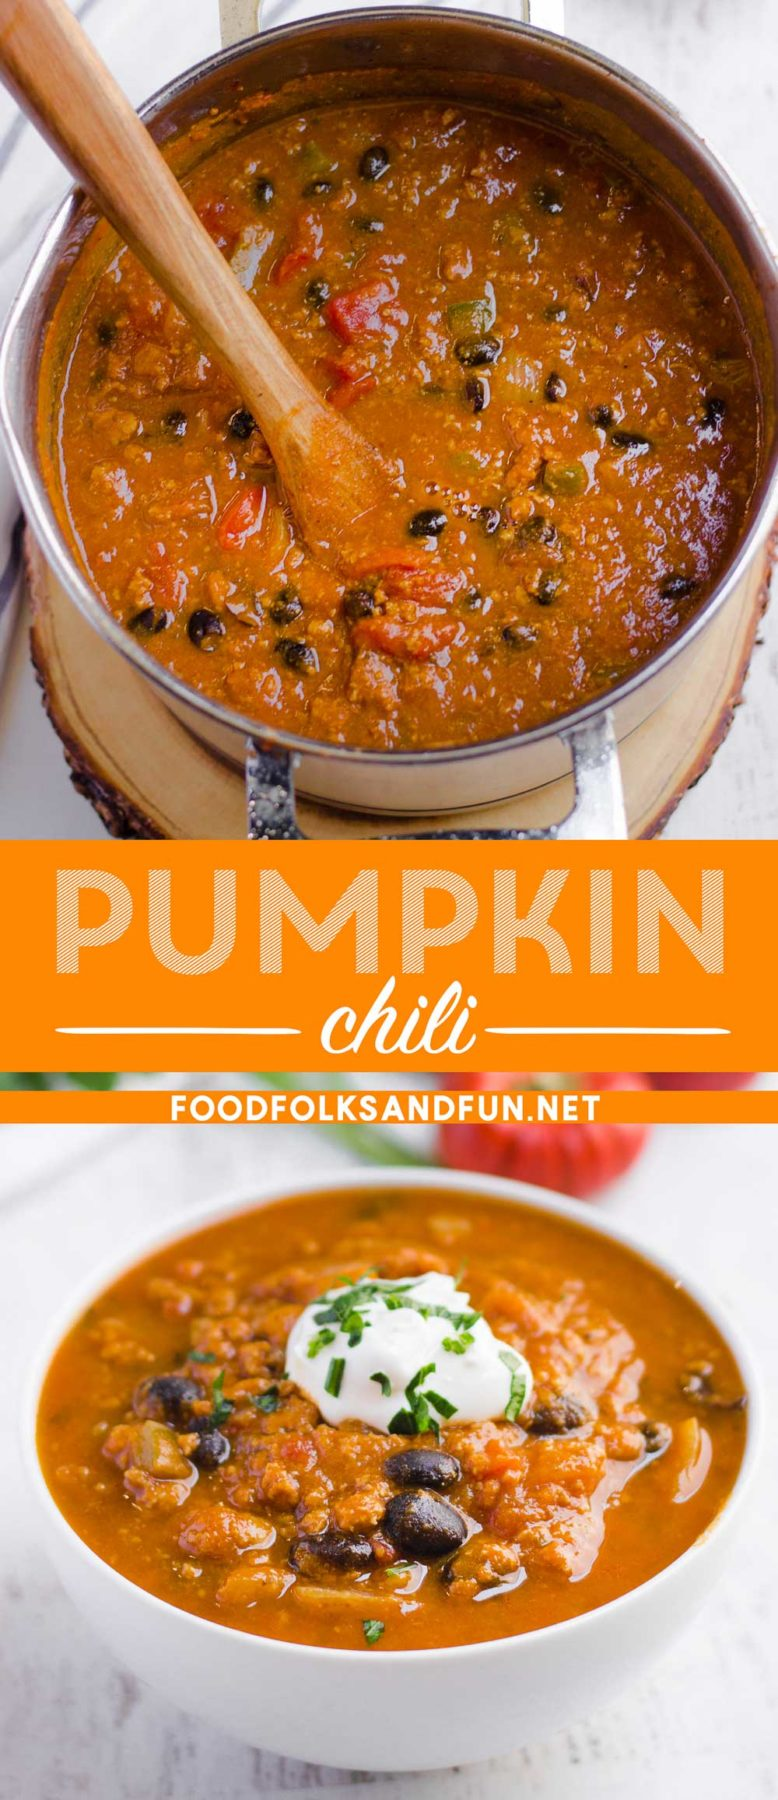 Pumpkin Chili is the ultimate fall dish; it's hearty, comforting, and has just a touch of delicious pumpkin flavor.